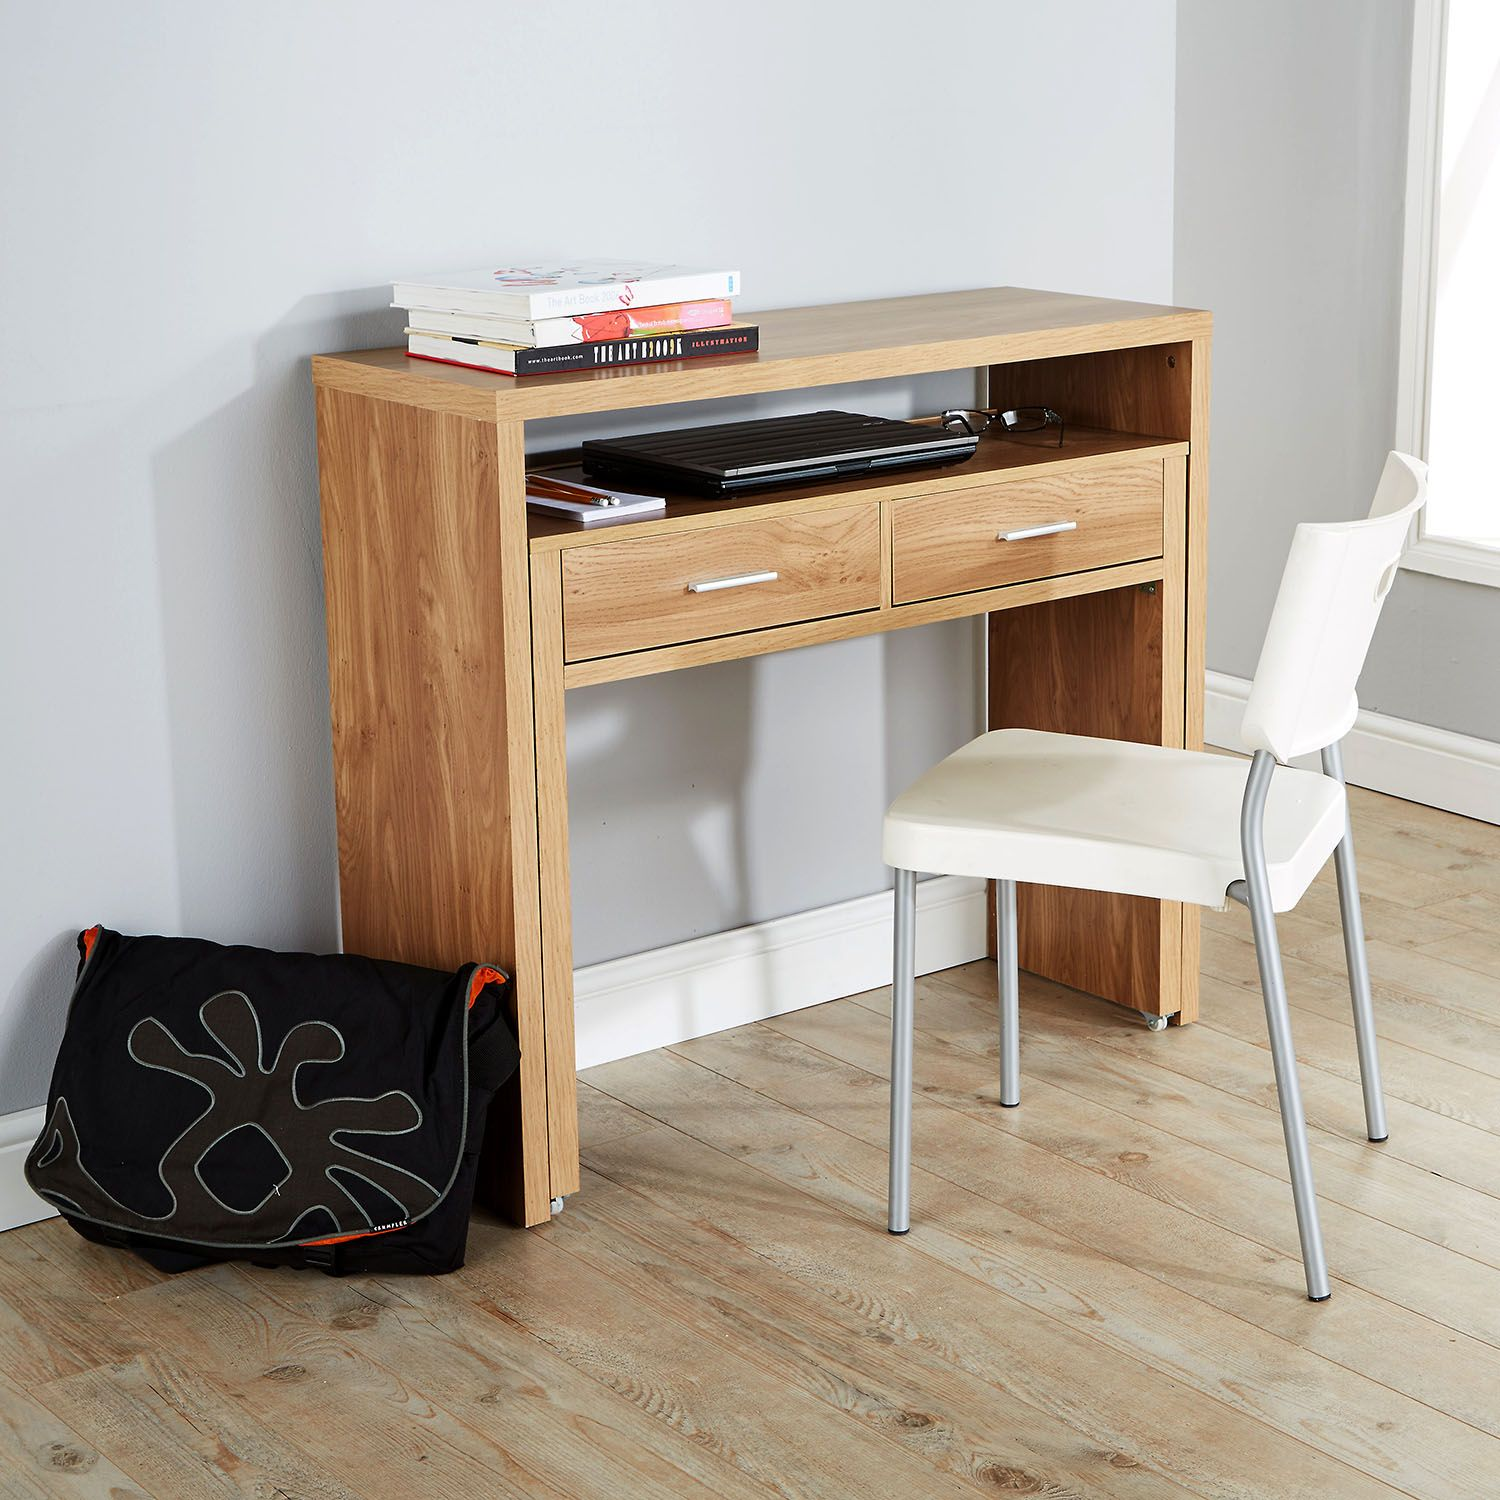 Regis Hideaway Console Desk  Next Day Delivery Regis Hideaway Console Desk  from WorldStores: Everything